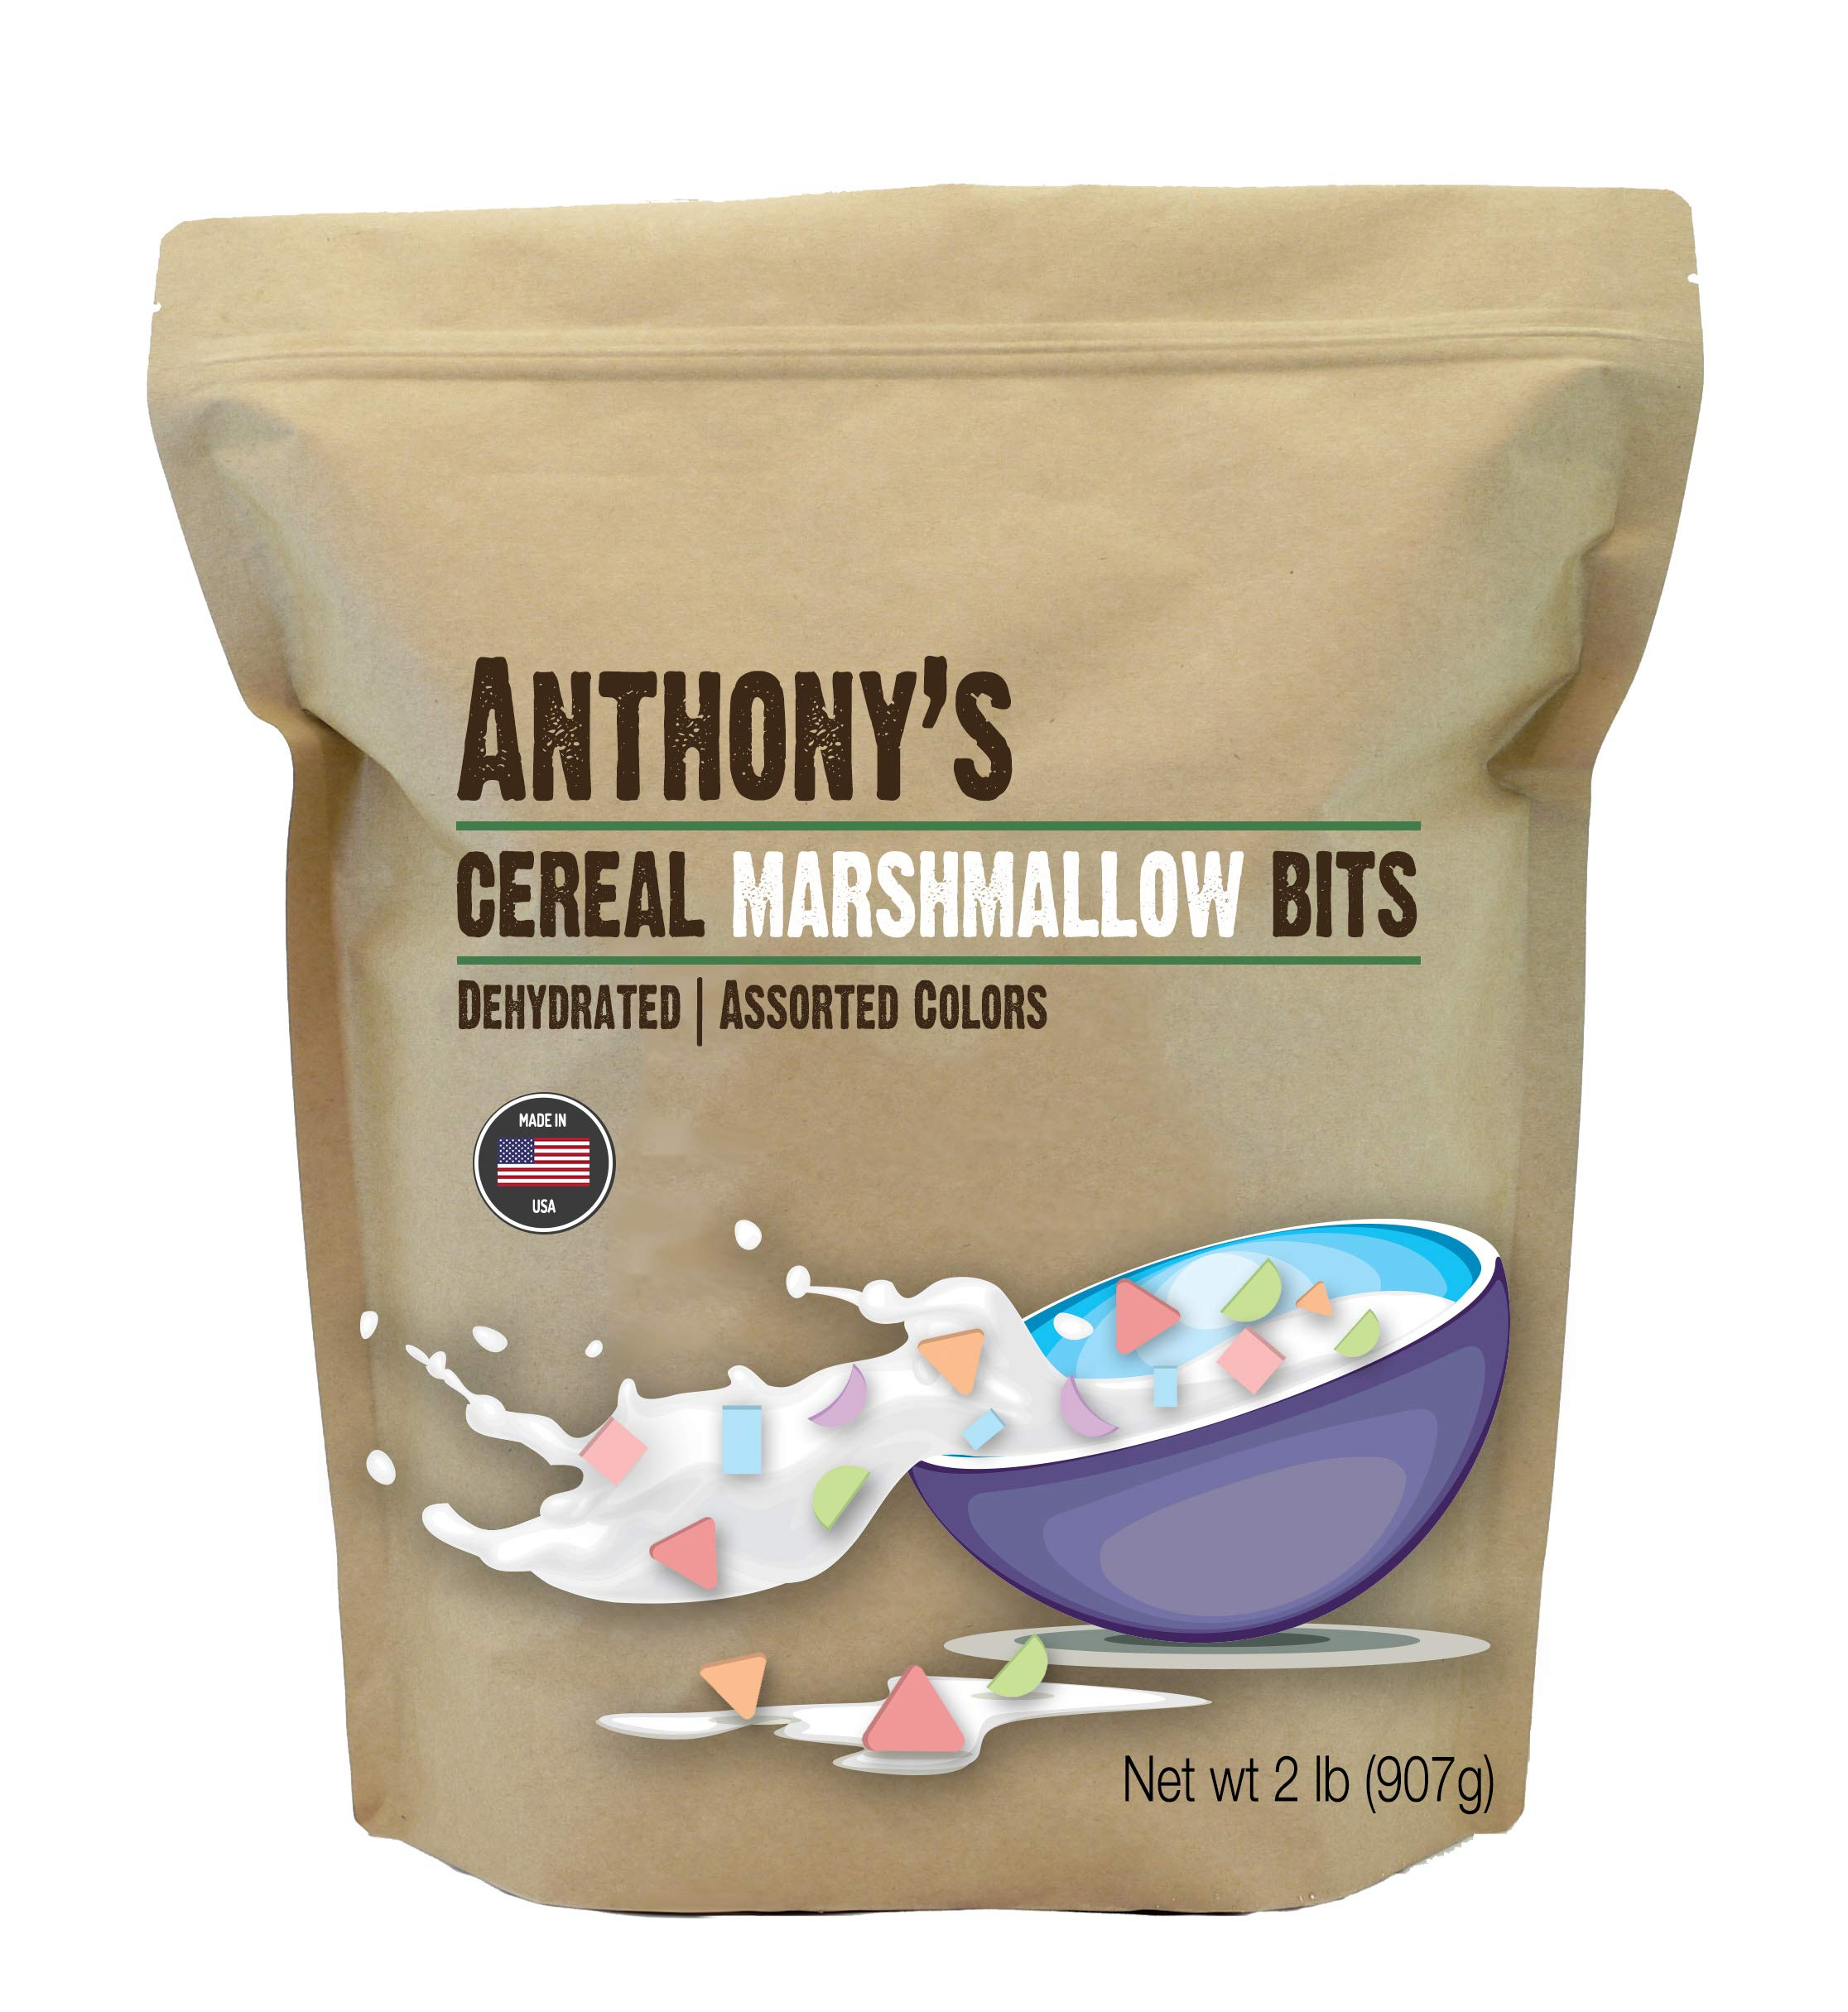 Anthony's Cereal Marshmallow Bits (2lb), Dehydrated, Assorted Colors & Shapes, Made in USA